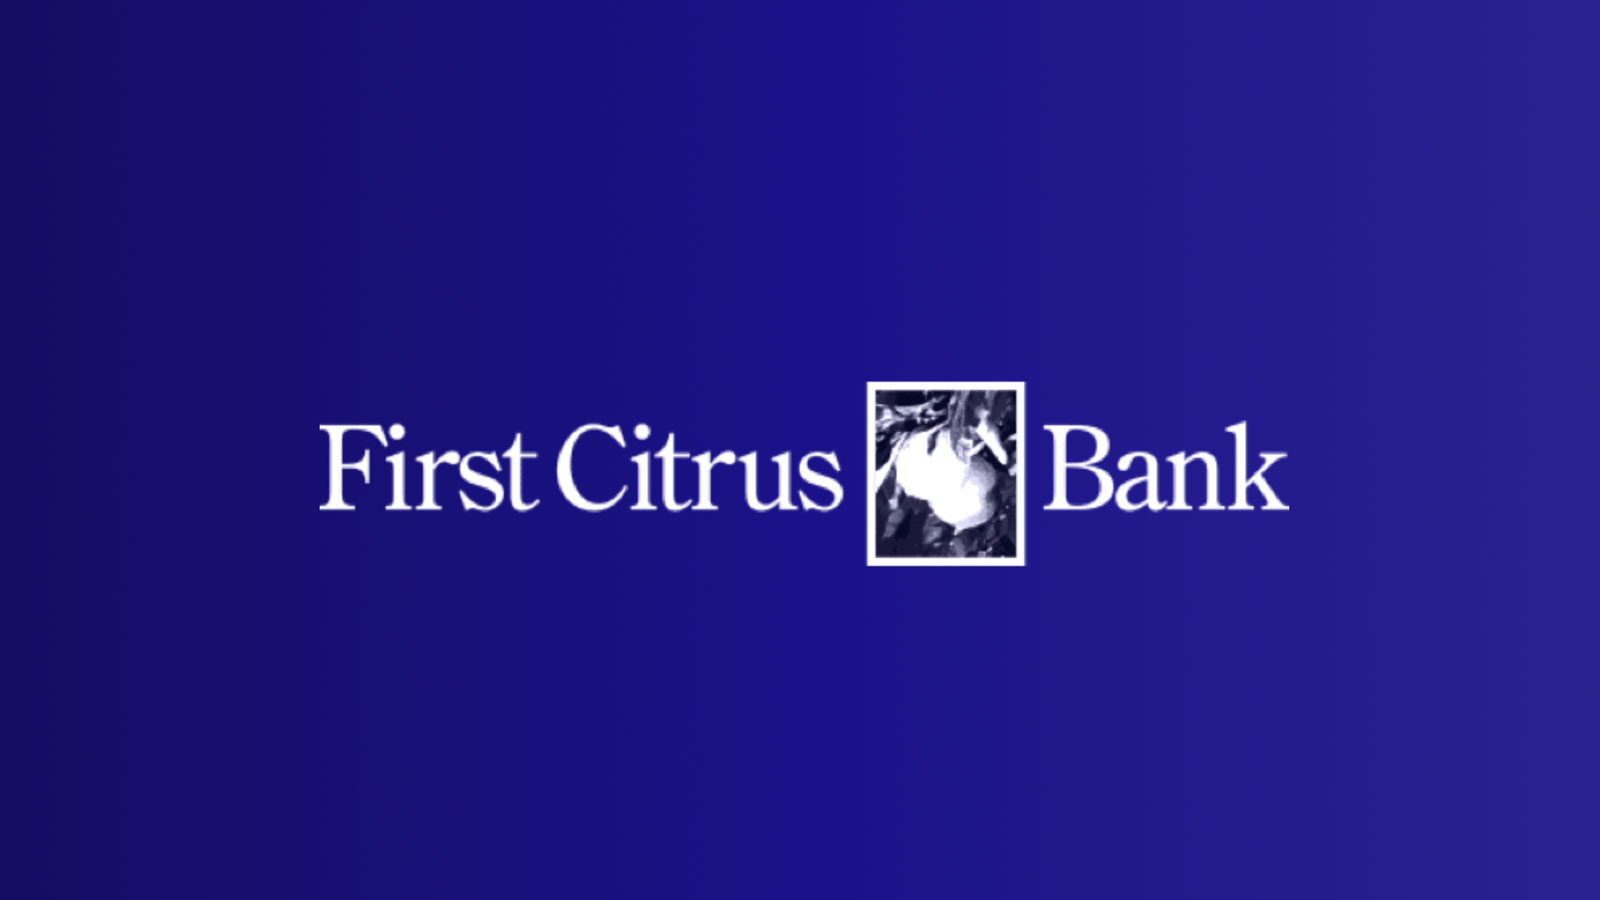 First Citrus Bank's Passwordless Workforce